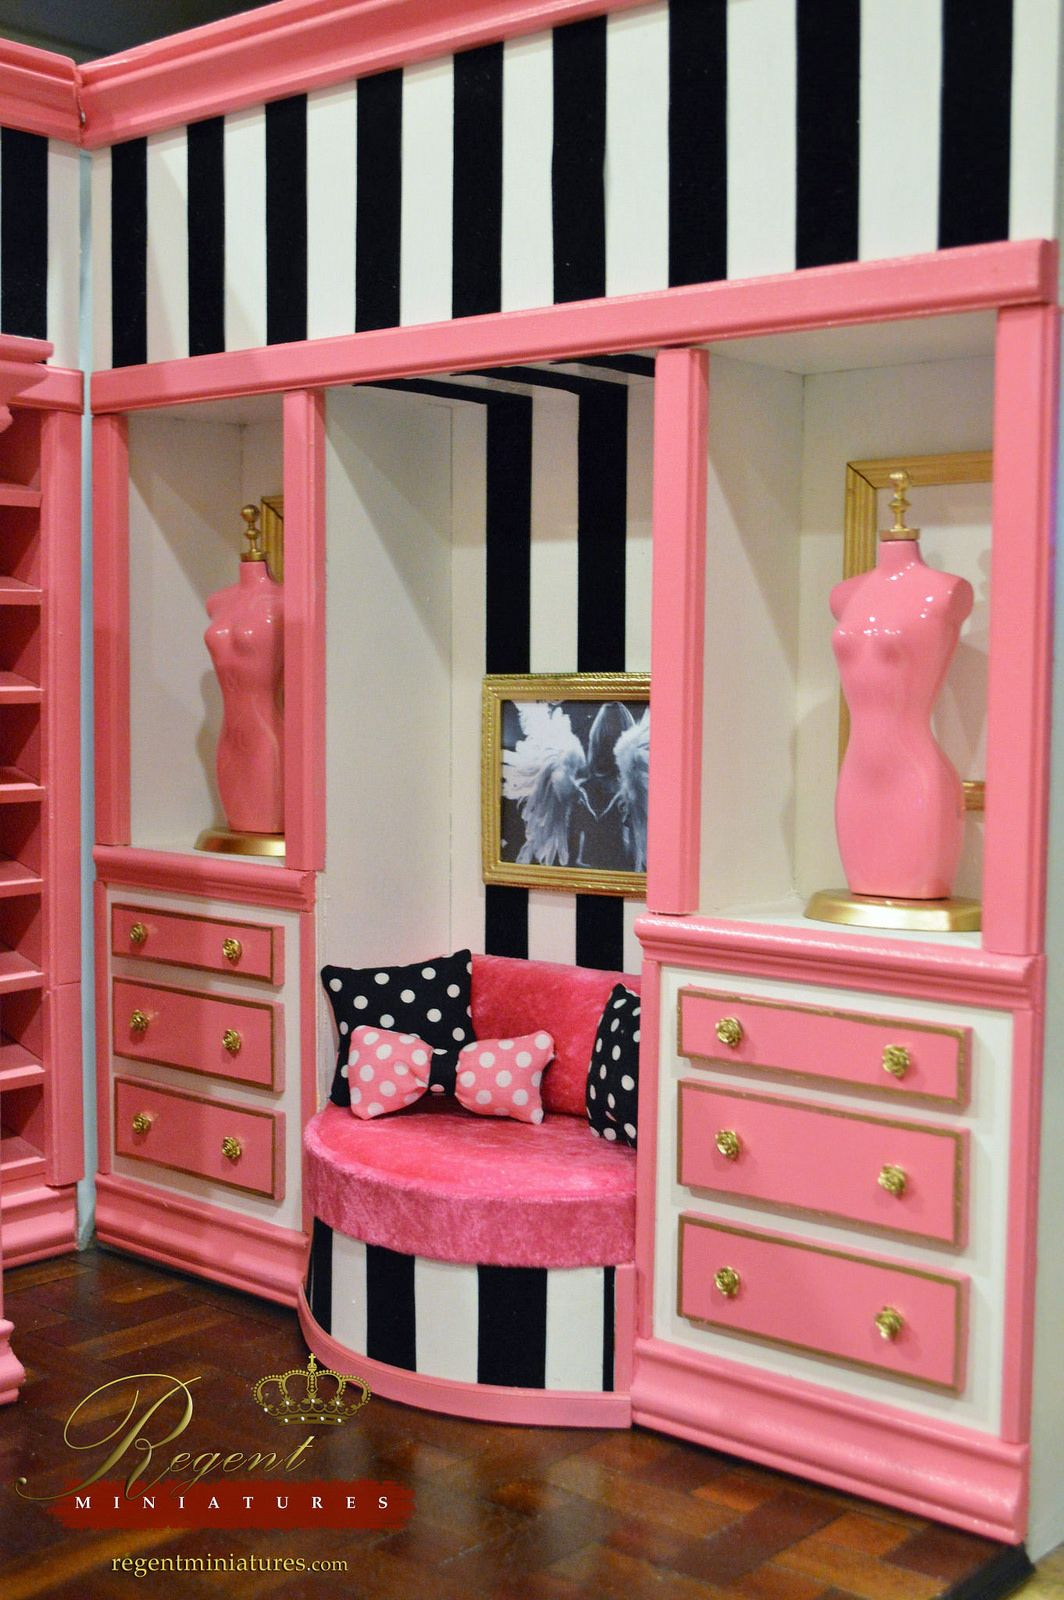 Shh! Victoria's Secret based Store by Ken Barbie room